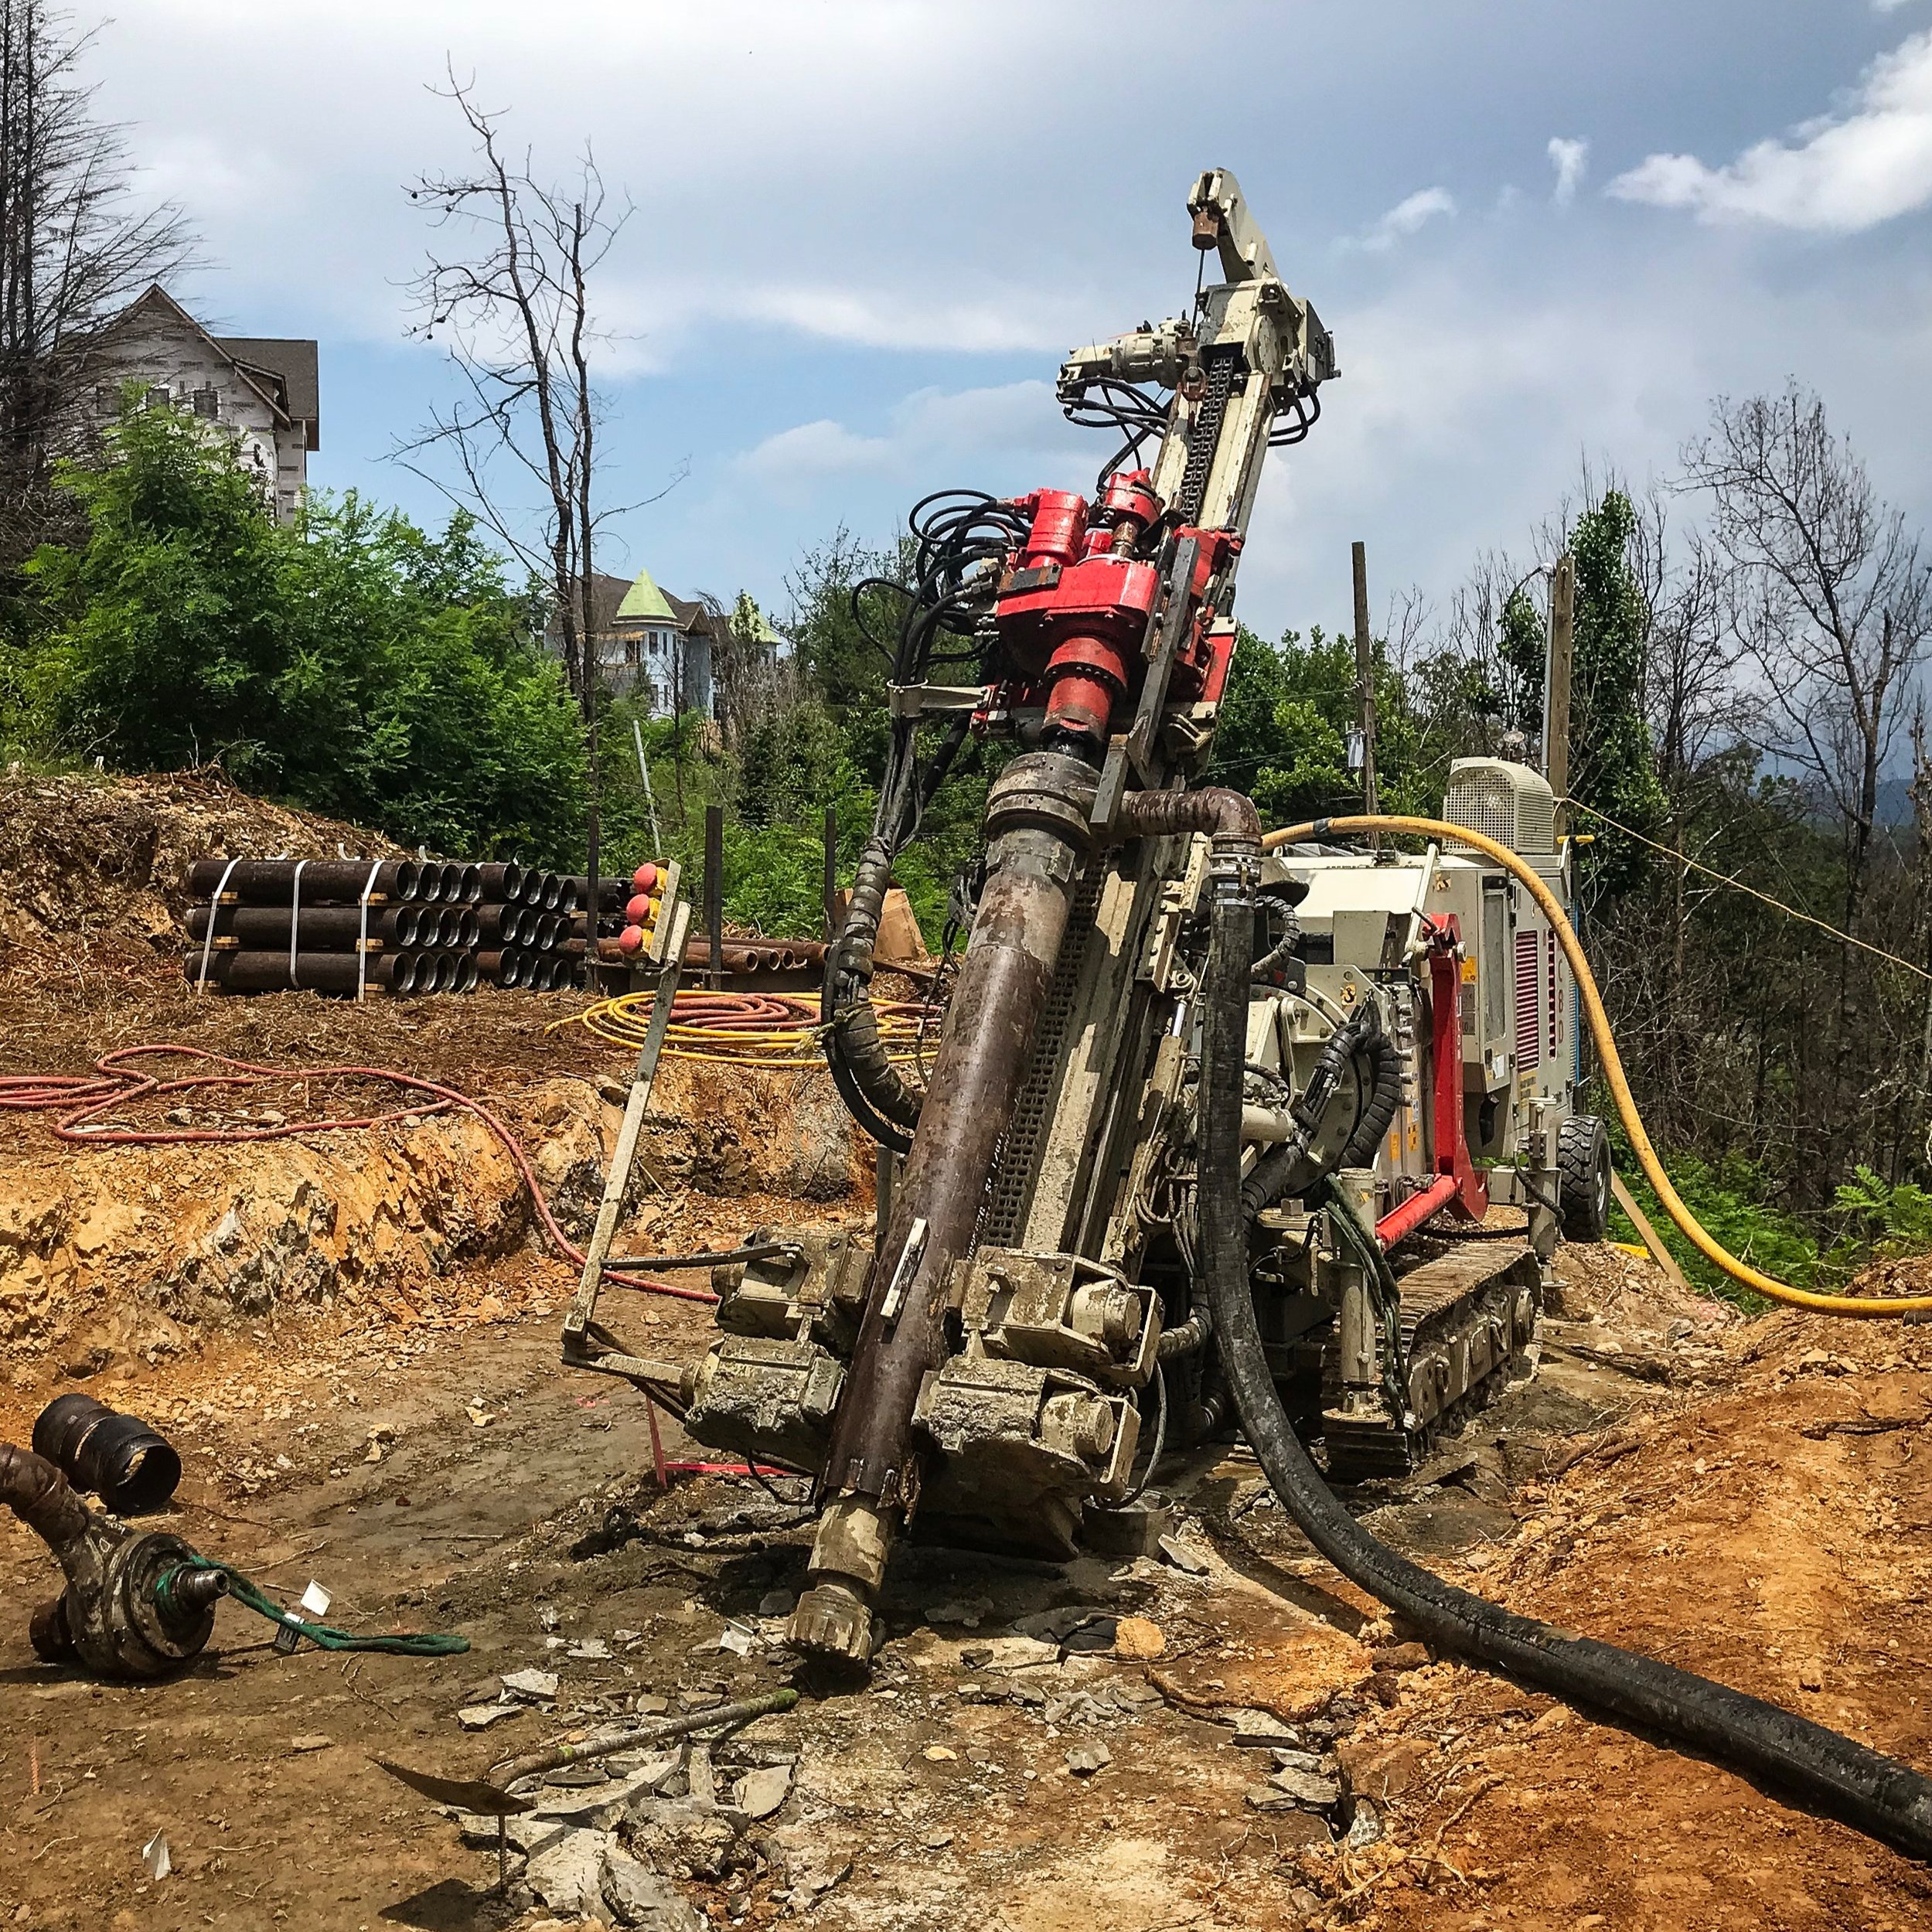 Drill rig ready to install micropiles for the Gatlinburg SkyBridge.